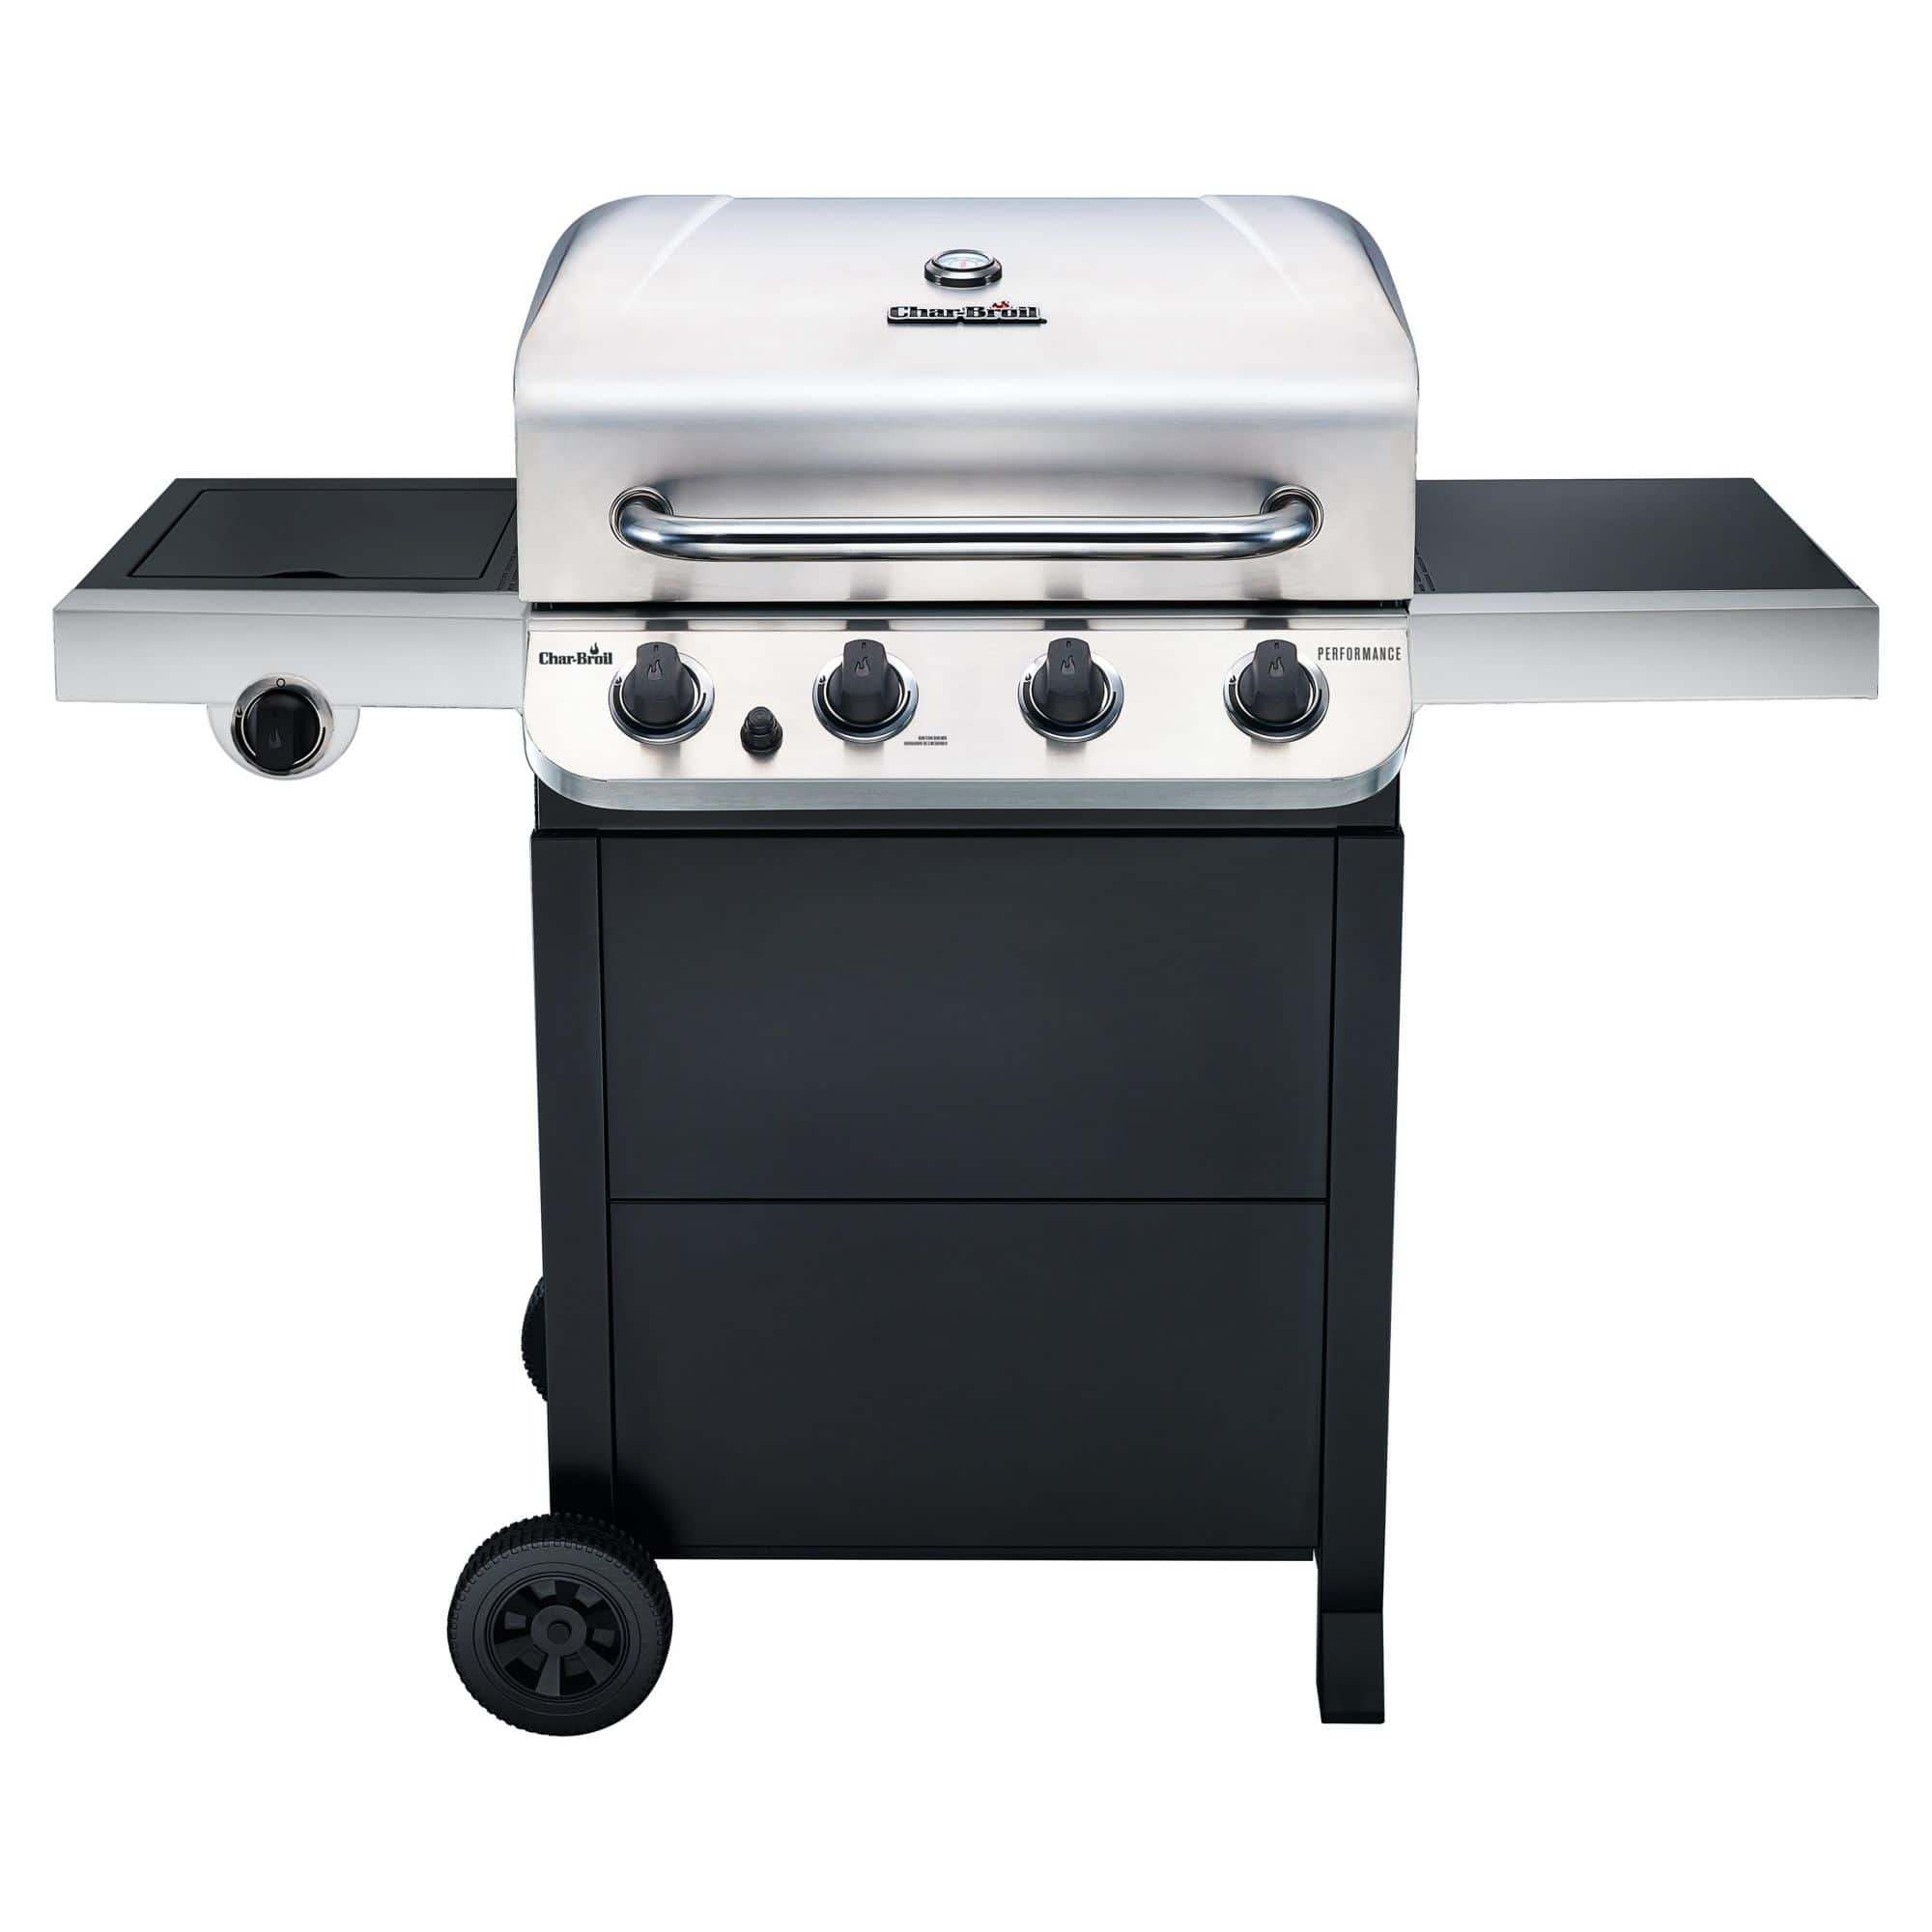 Char-Broil Performance Series 4-Burner Gas Grill with side burner at BJ's Wholesale club $179.99